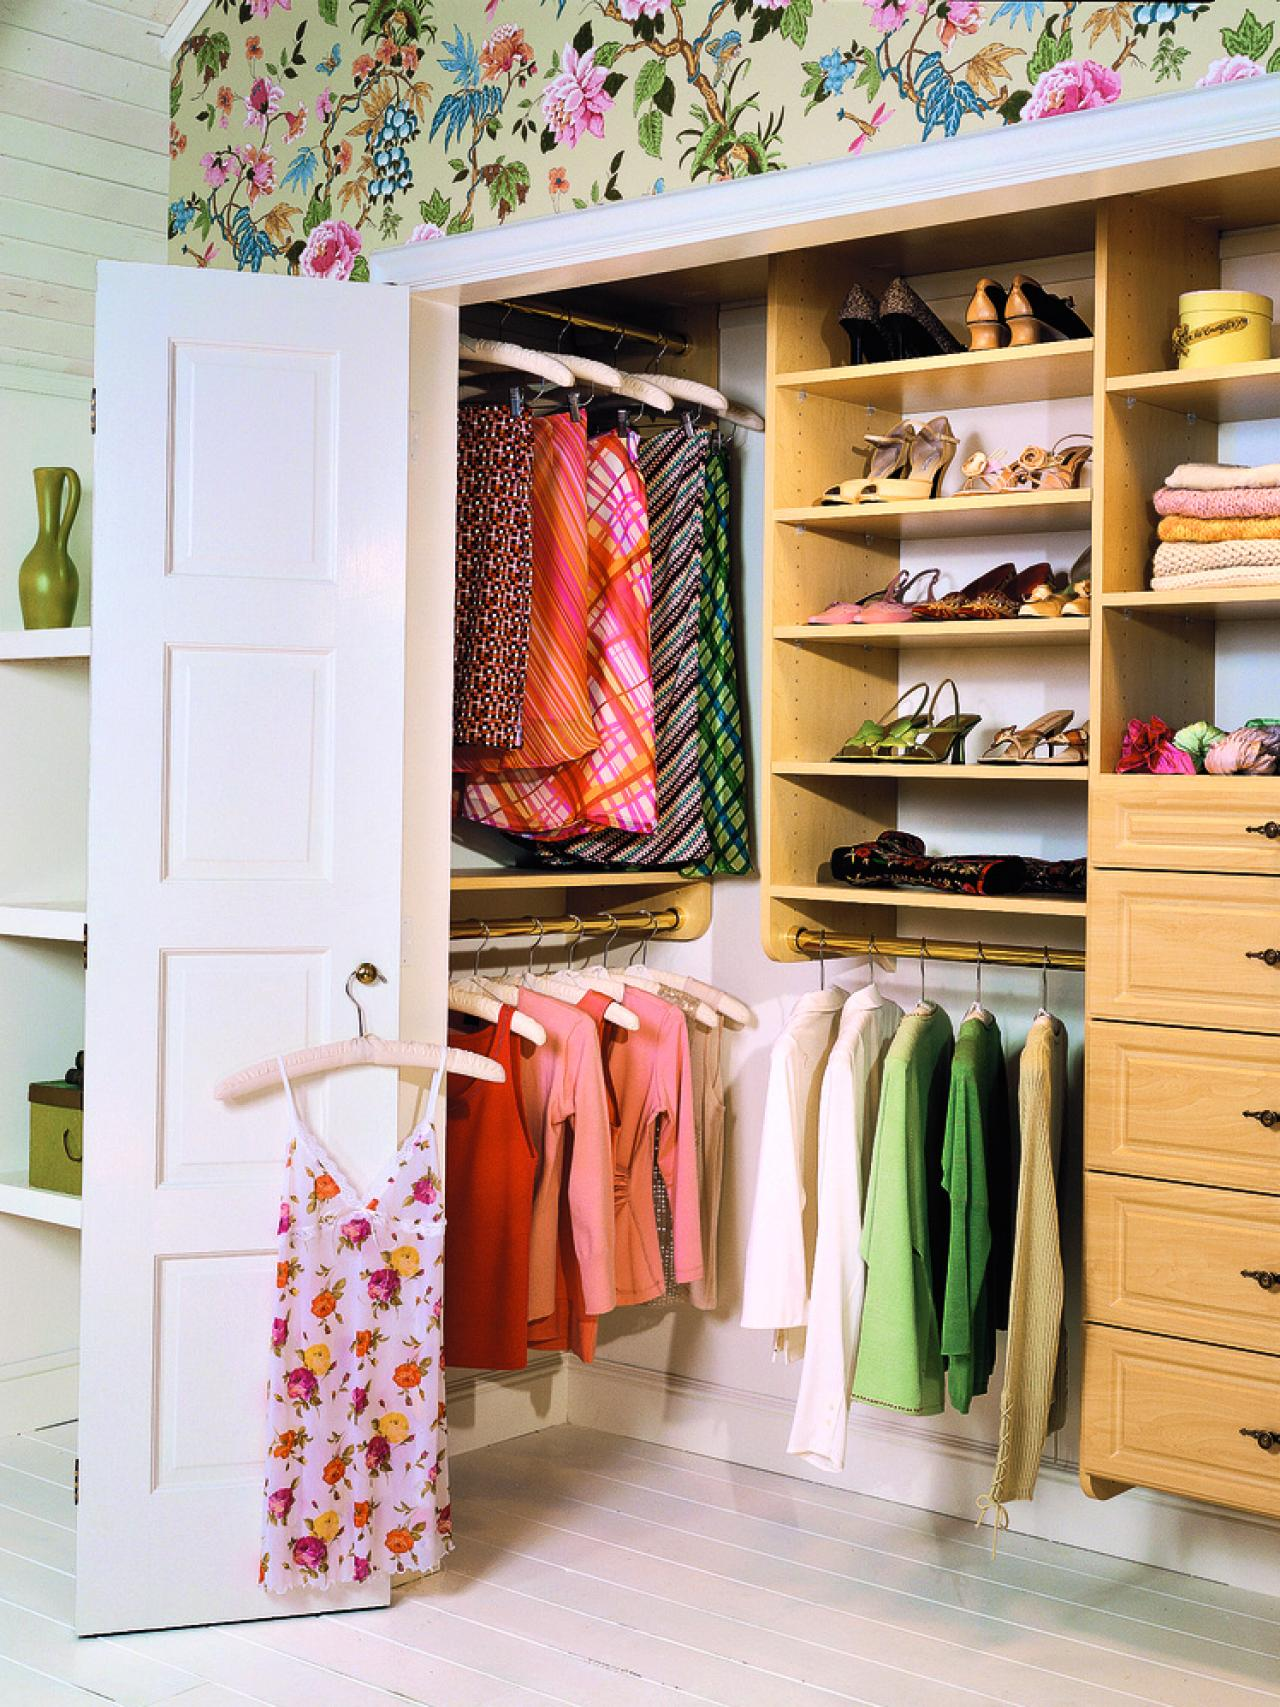 Amusing Design Of The Closet Organizers Ideas With Brown Wooden Shelves Added With White Wall And White Floor Ideas